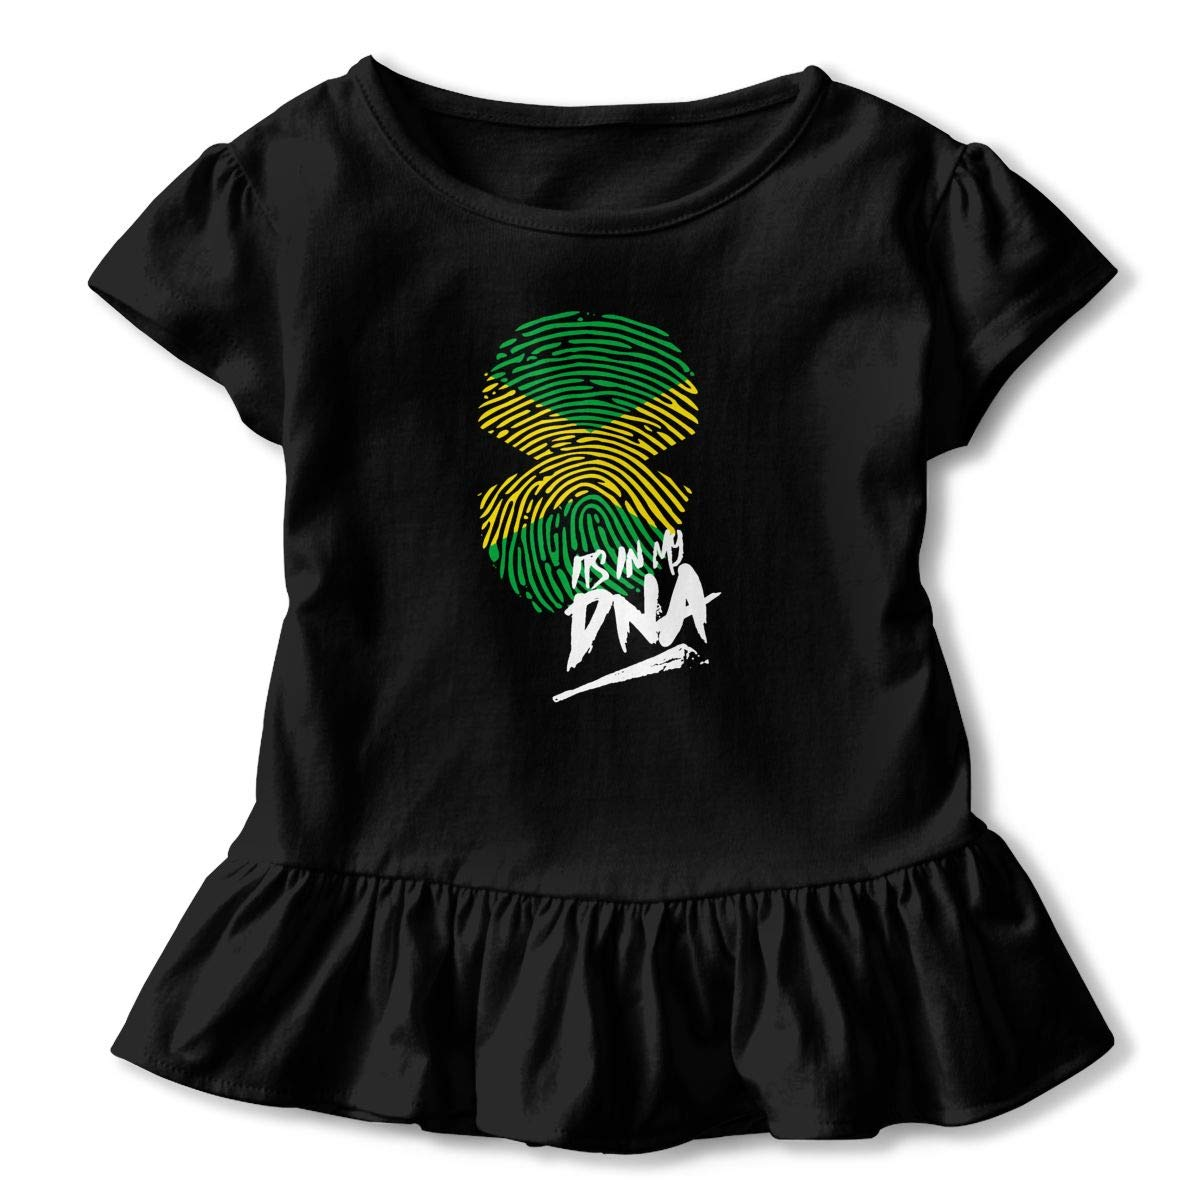 Its in My DNA Jamaican Ethnic Pride Motivational Toddler Baby Girls Cotton Ruffle Short Sleeve Top Cute T-Shirt 2-6T